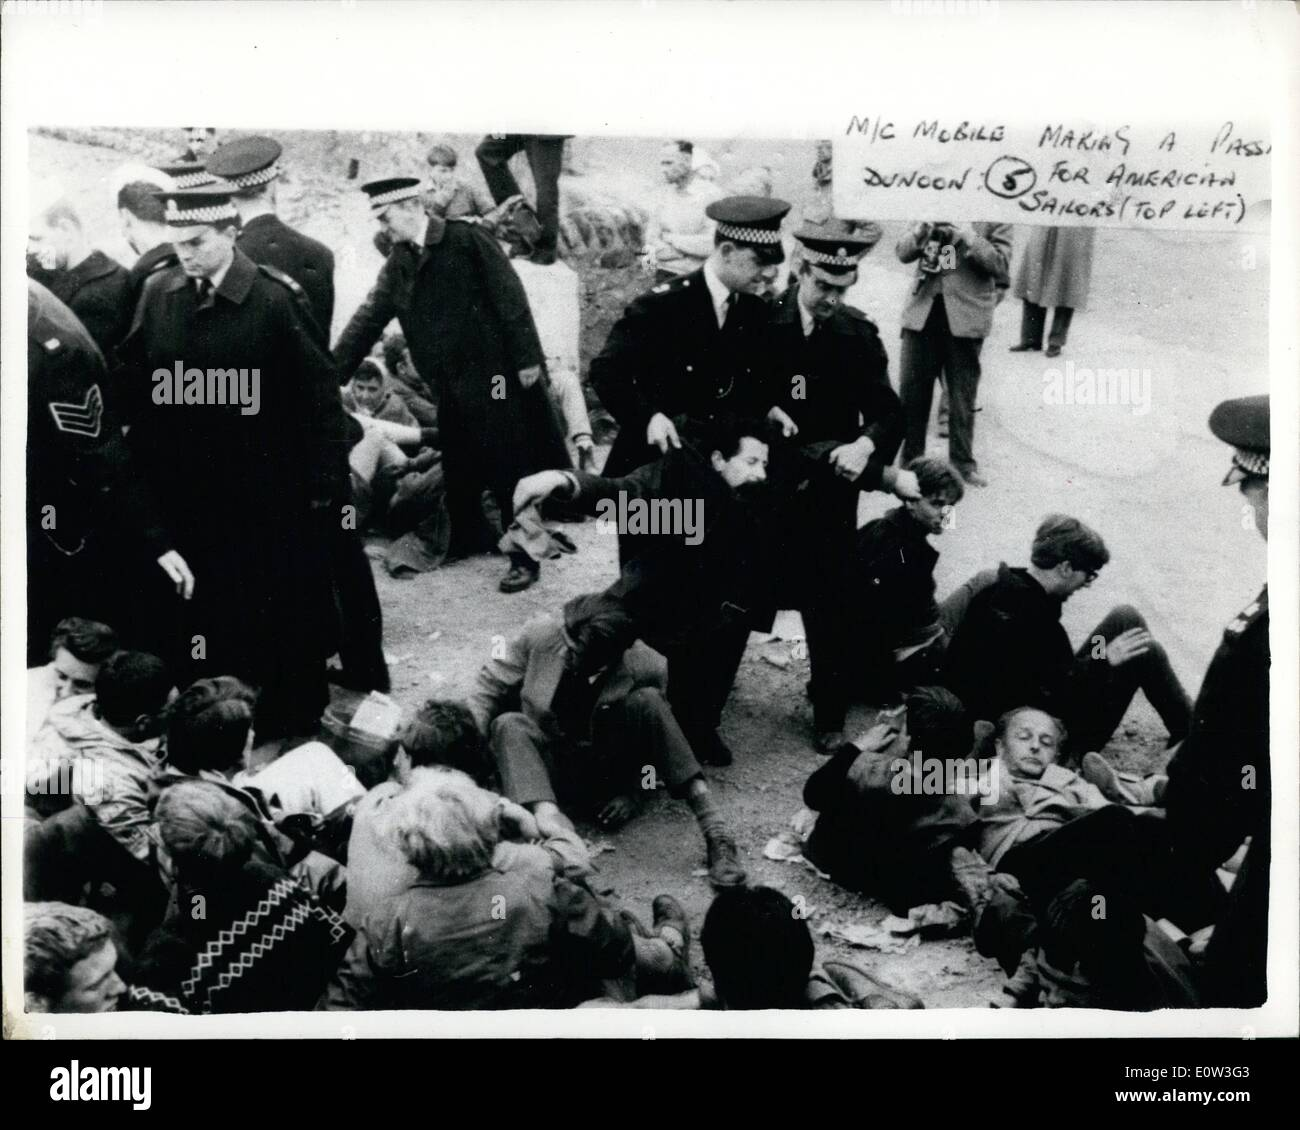 May 22, 1961 - 22-5-61 Police remove demonstrators from Polaris Base. Police struggled to remove demonstrators who squatted in the roadway etc., at the Holy Loch today where the American Nuclear Submarine Polaris is stationed. Keystone Photo Shows: Police man-handled the squatters to remove them from the scene around the Holy Loch today. - Stock Image